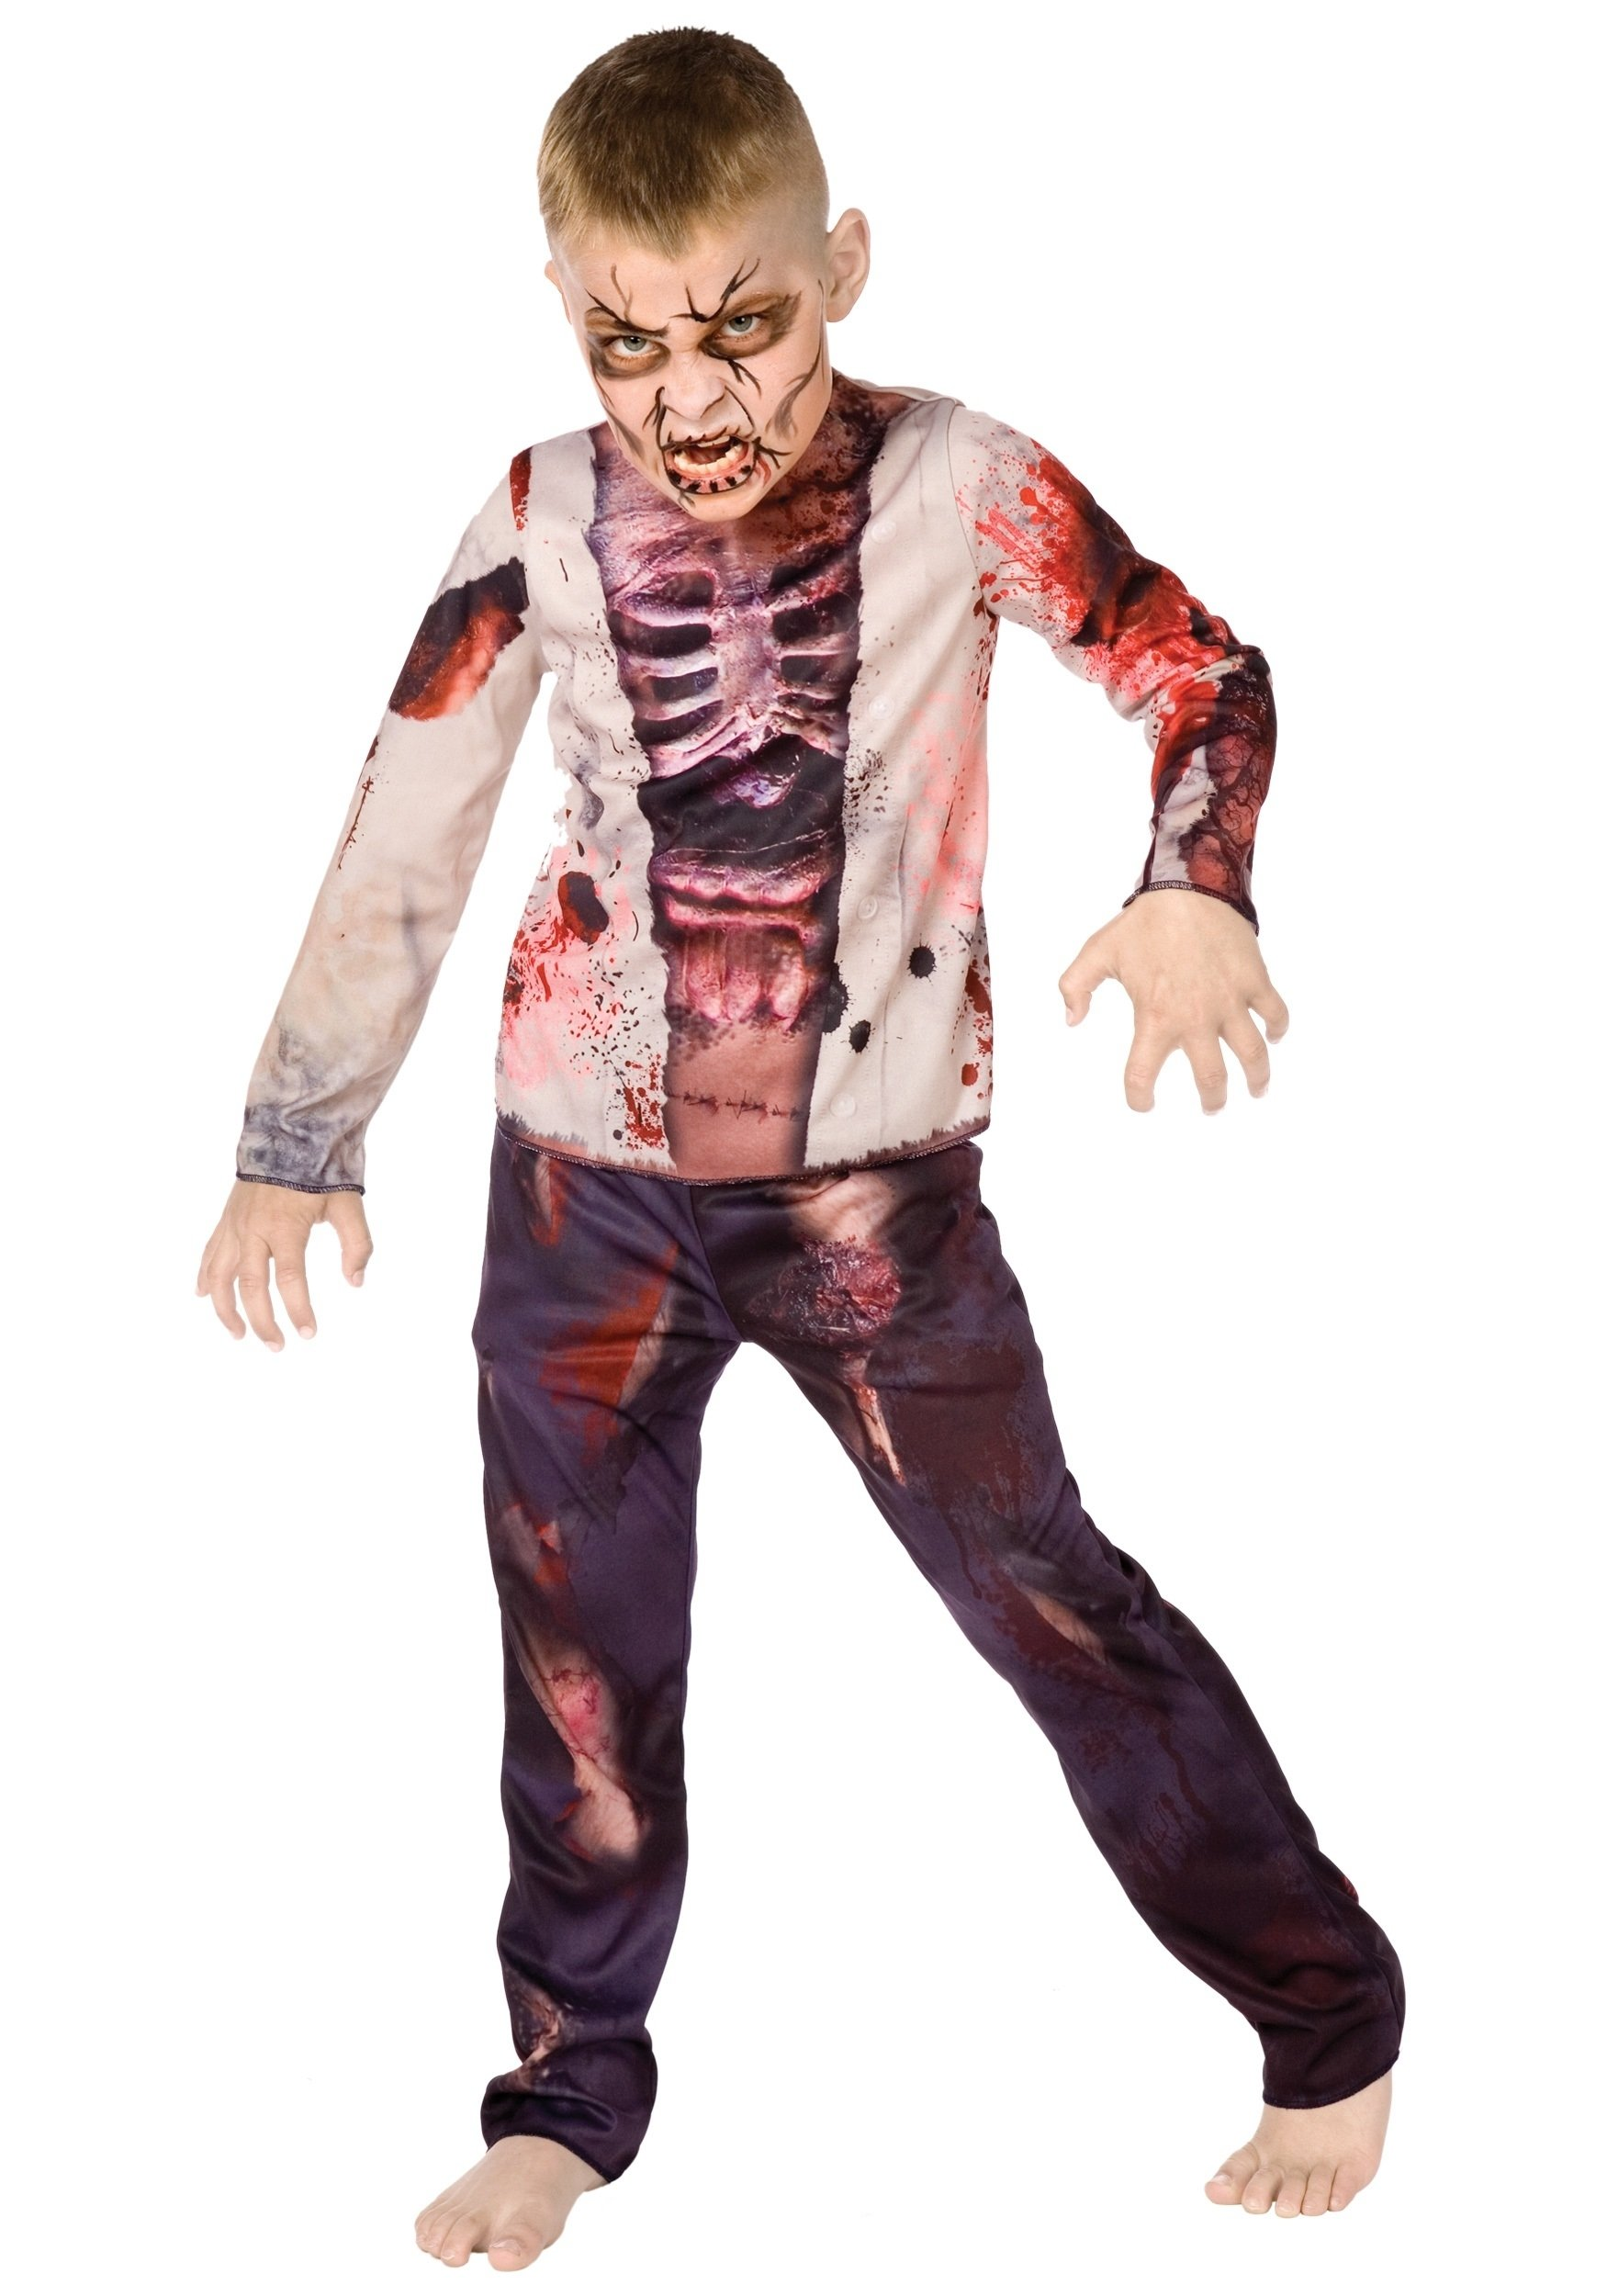 10 Attractive Zombie Costume Ideas For Kids boy zombie costume 2021